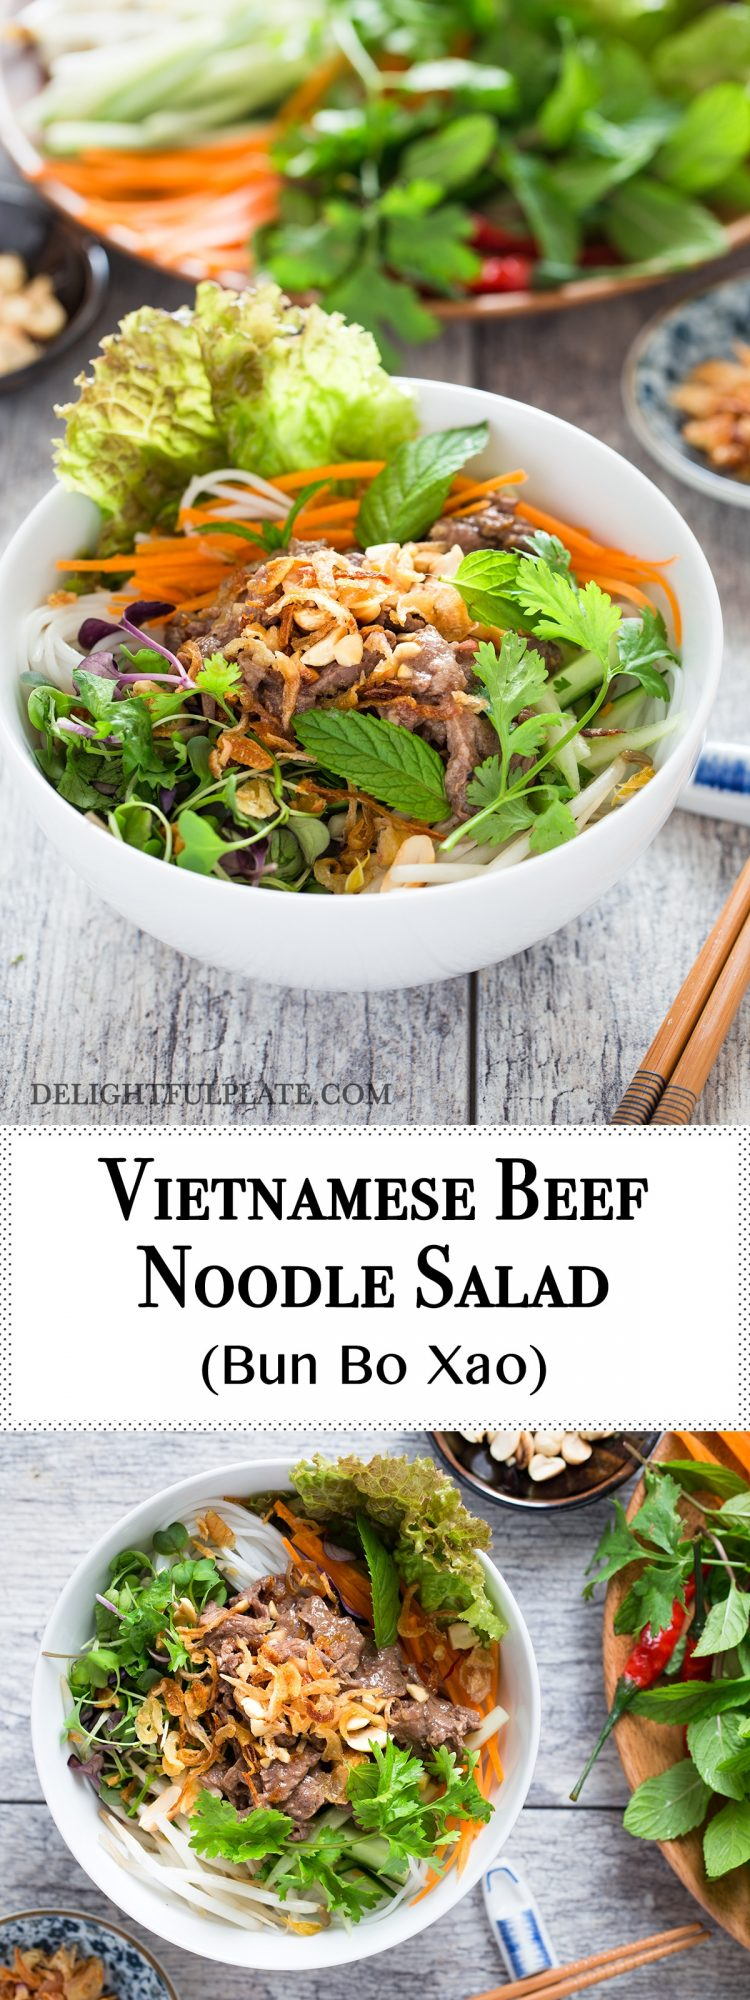 Vietnamese beef noodle salad is tasty with tender beef, crunchy veggies and refreshing herbs. It can be either a salad or main dish.